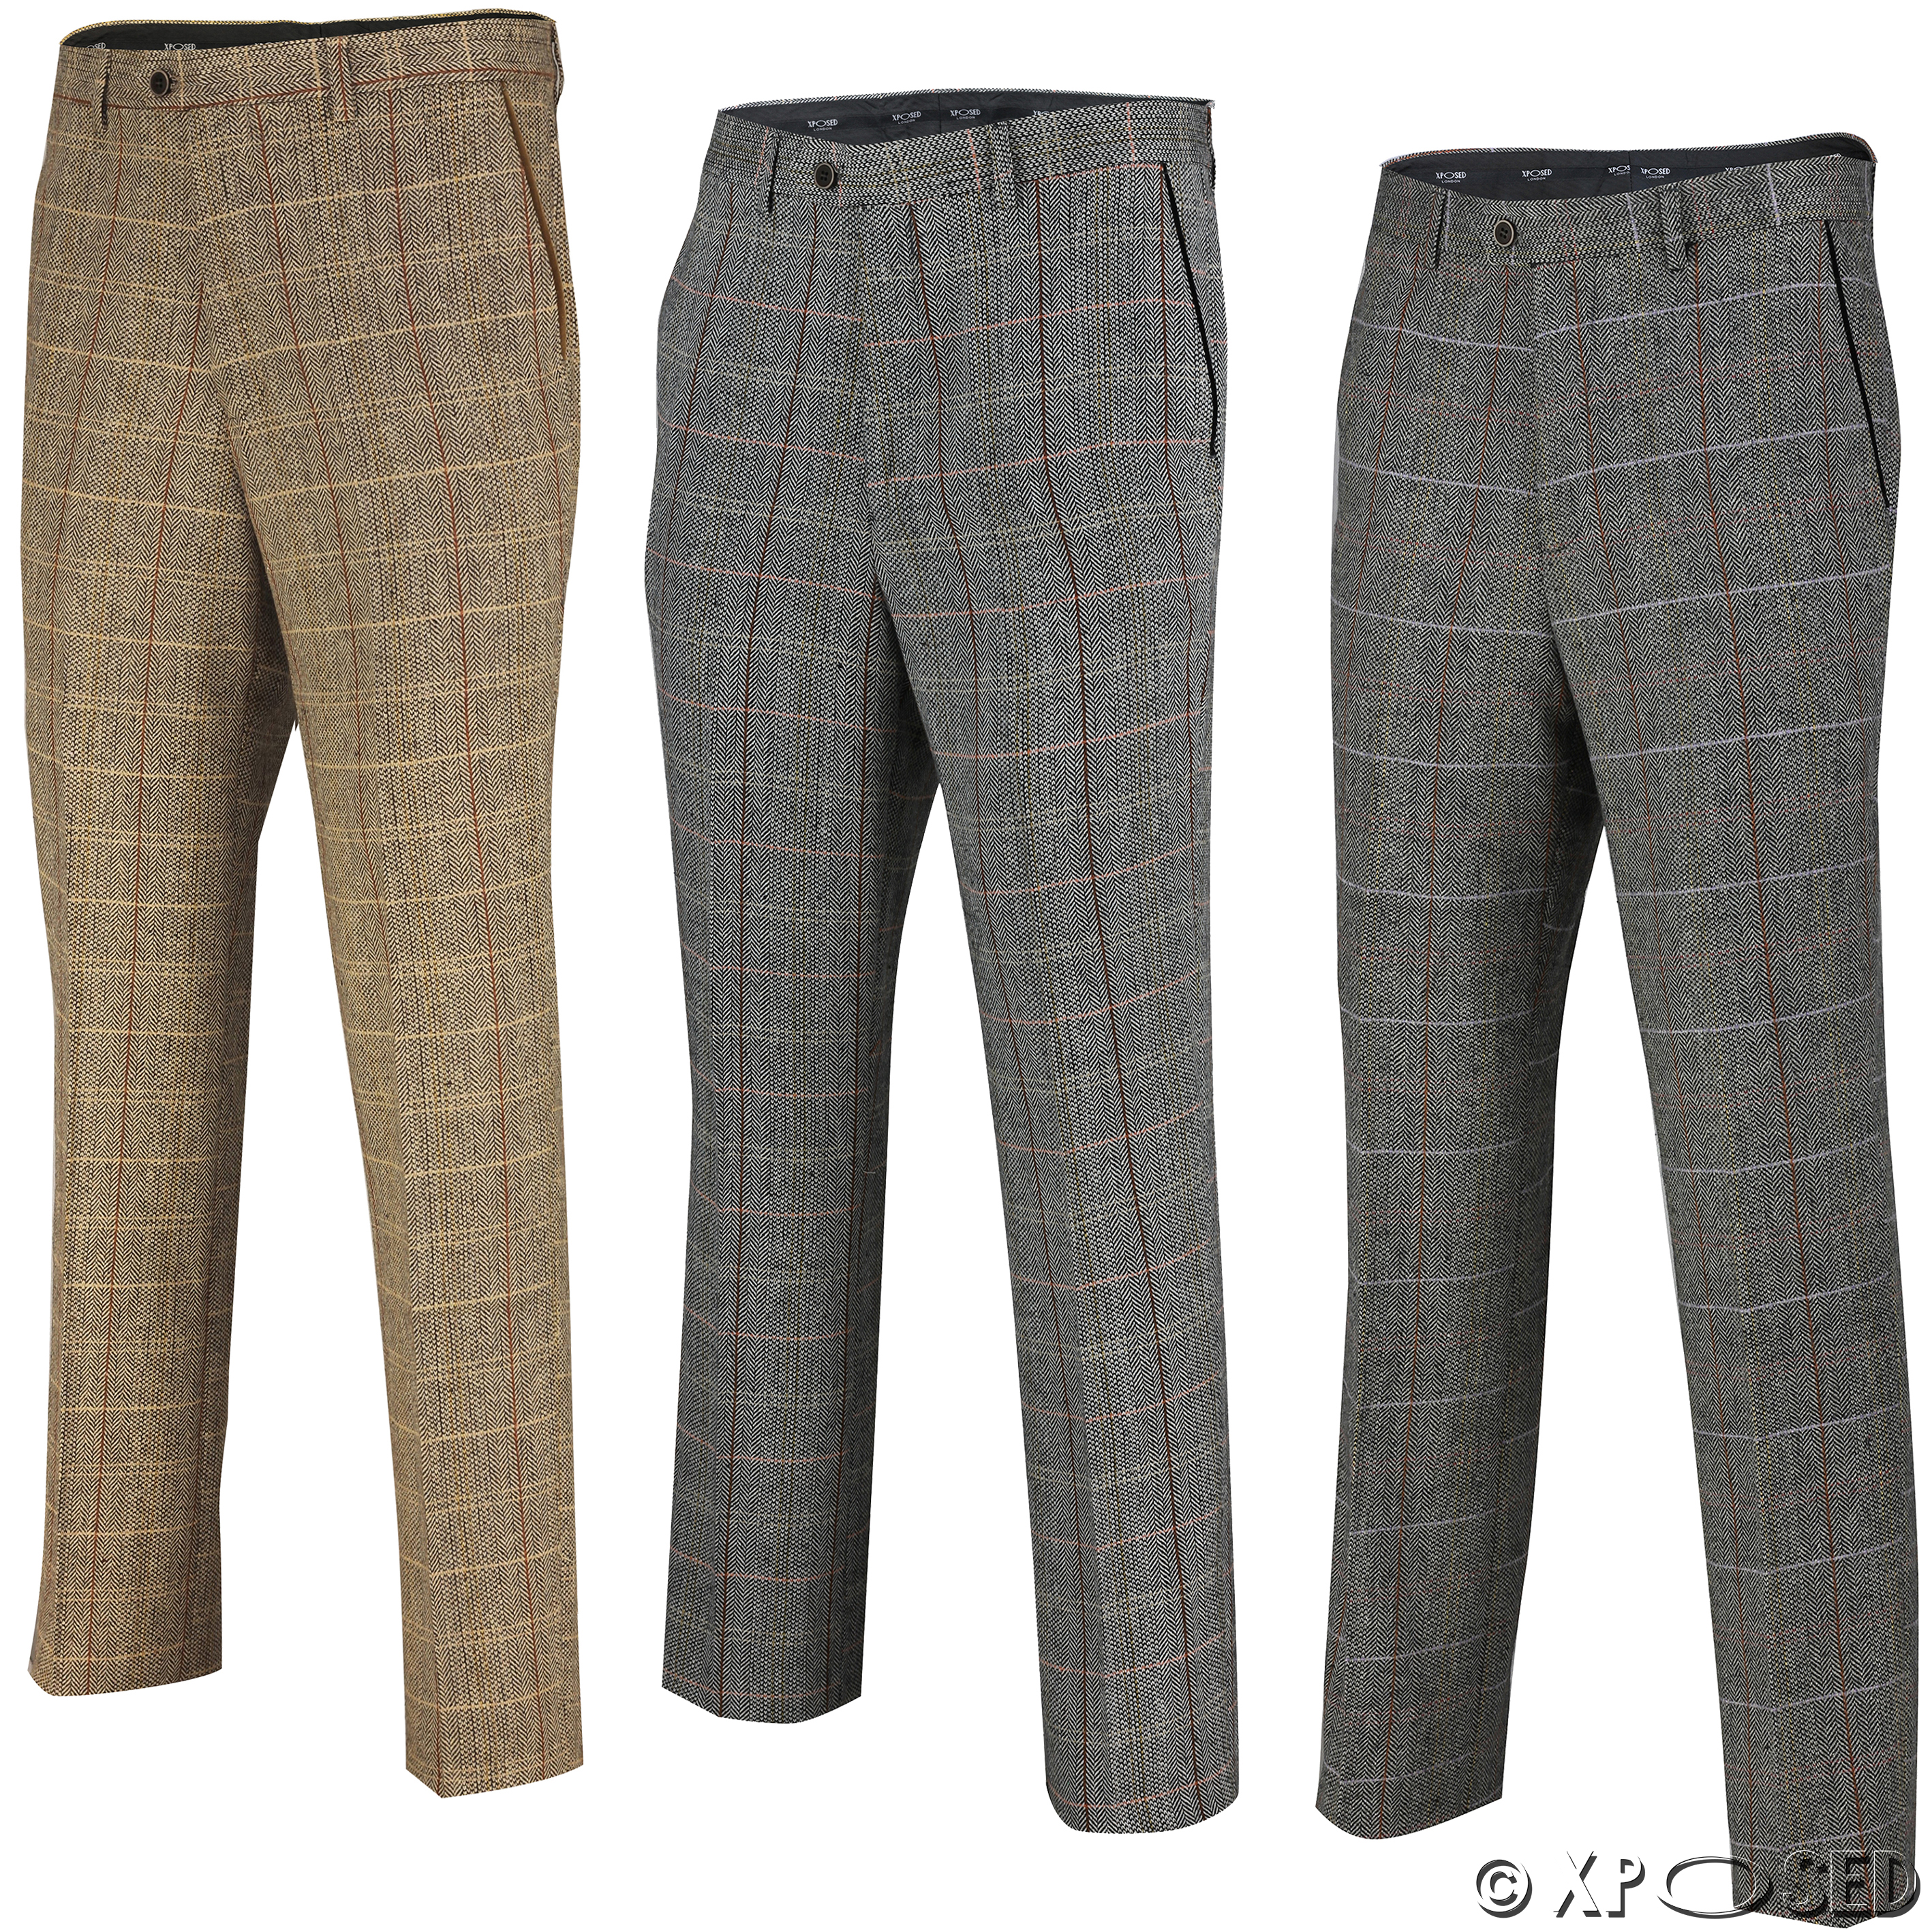 Mens Herringbone Check Trouser Vintage Tweed Slim Fit Smart Formal Pant Tan Grey | EBay